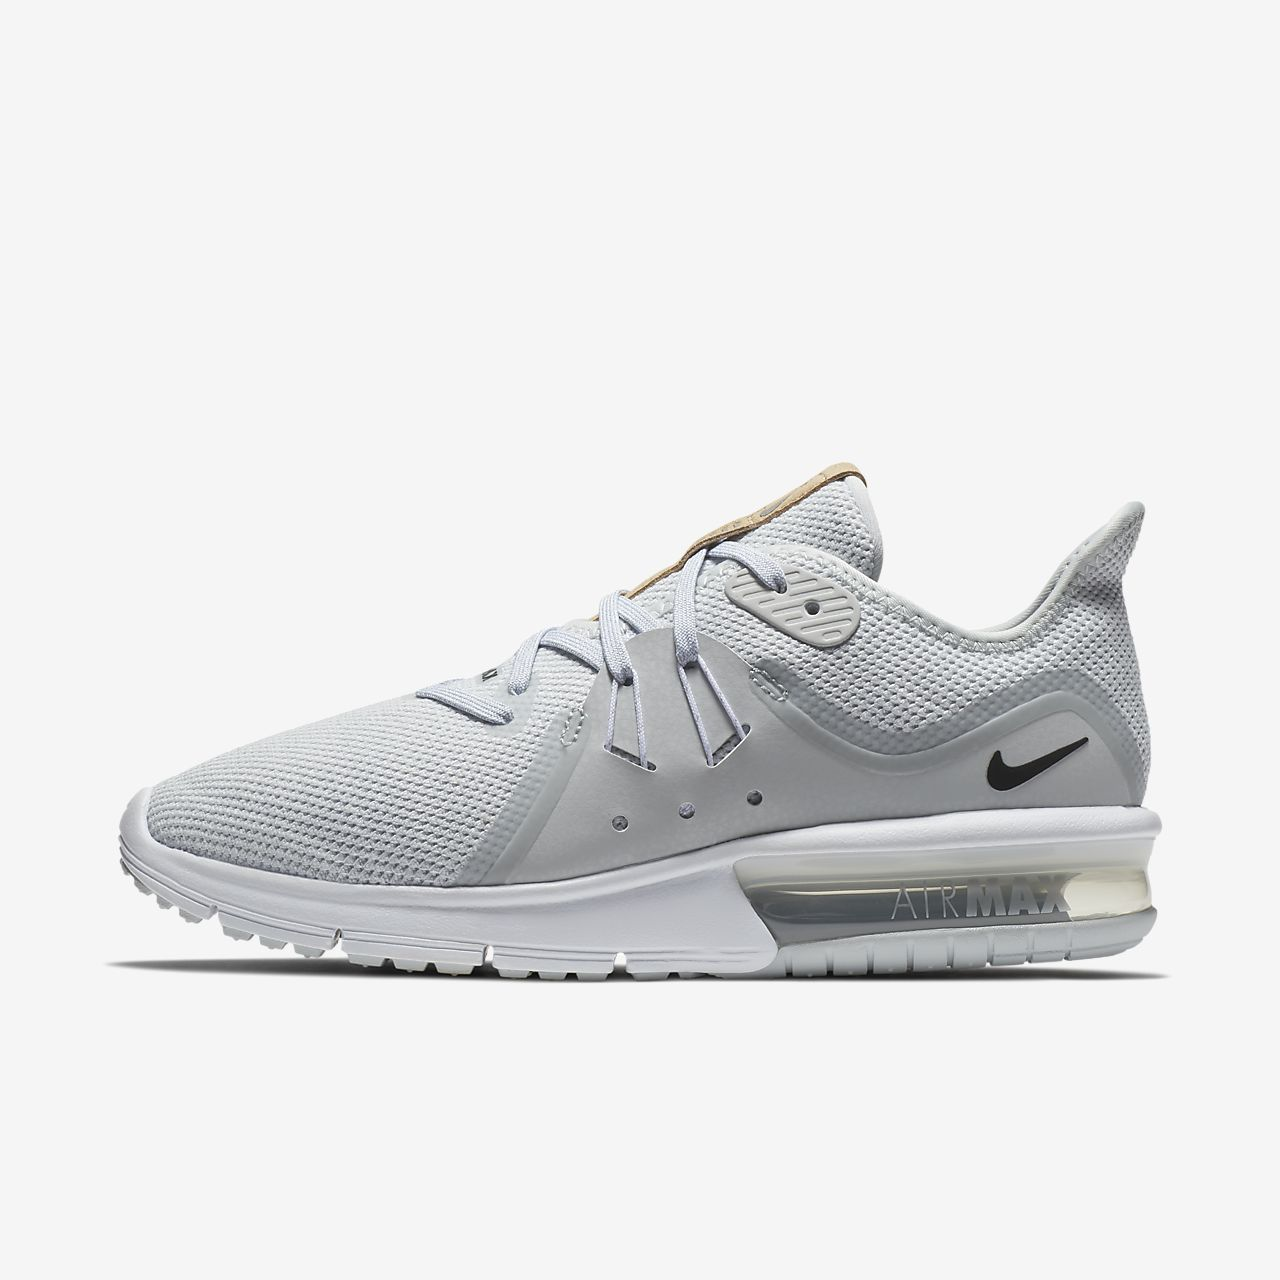 buy popular c7e38 5bba1 ... Nike Air Max Sequent 3 Women s Shoe